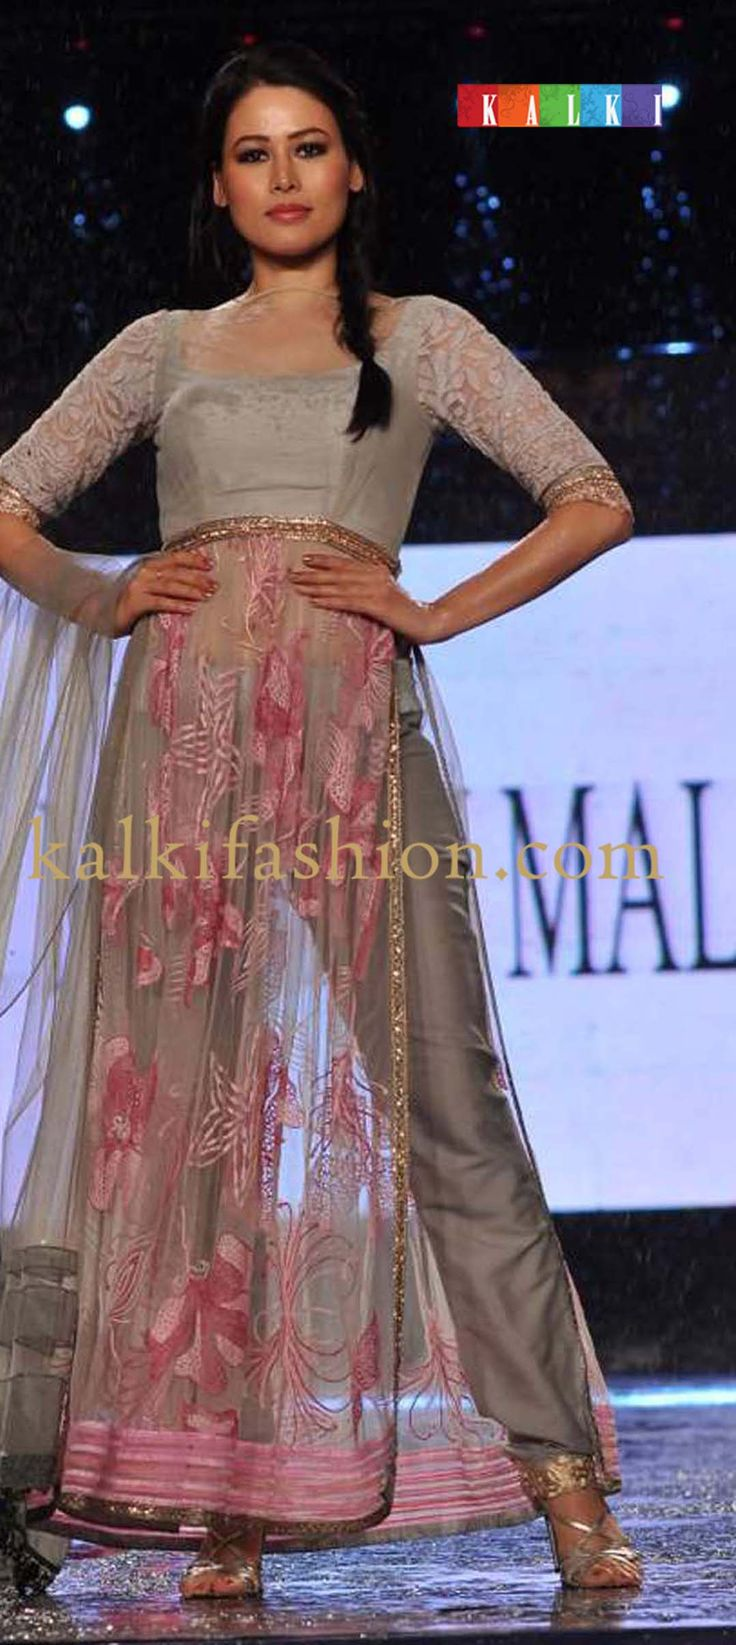 Manish malhotra anarkali manish malhotra anarkali hd wallpapers car - Http Www Kalkifashion Com Designers Manish Malhotra Manish Malhotra Anarkalianarkali